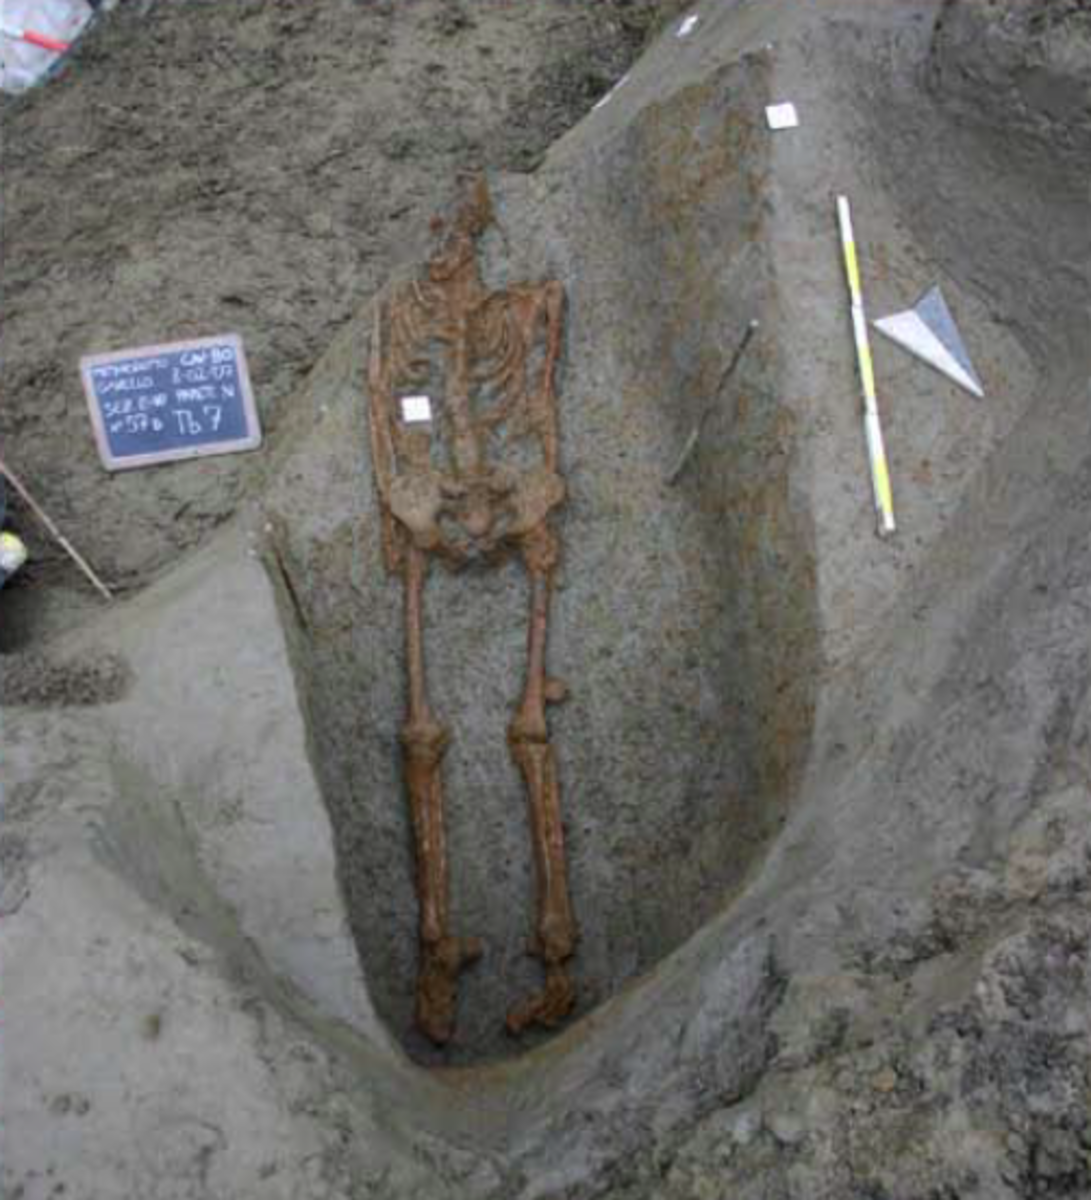 The burial discovered near Gavello in the Po Plain. (Credit: Soprintendenza Archeology, Fine Arts and Landscape for the Provinces of Verona, Rovigo and Vicenza)